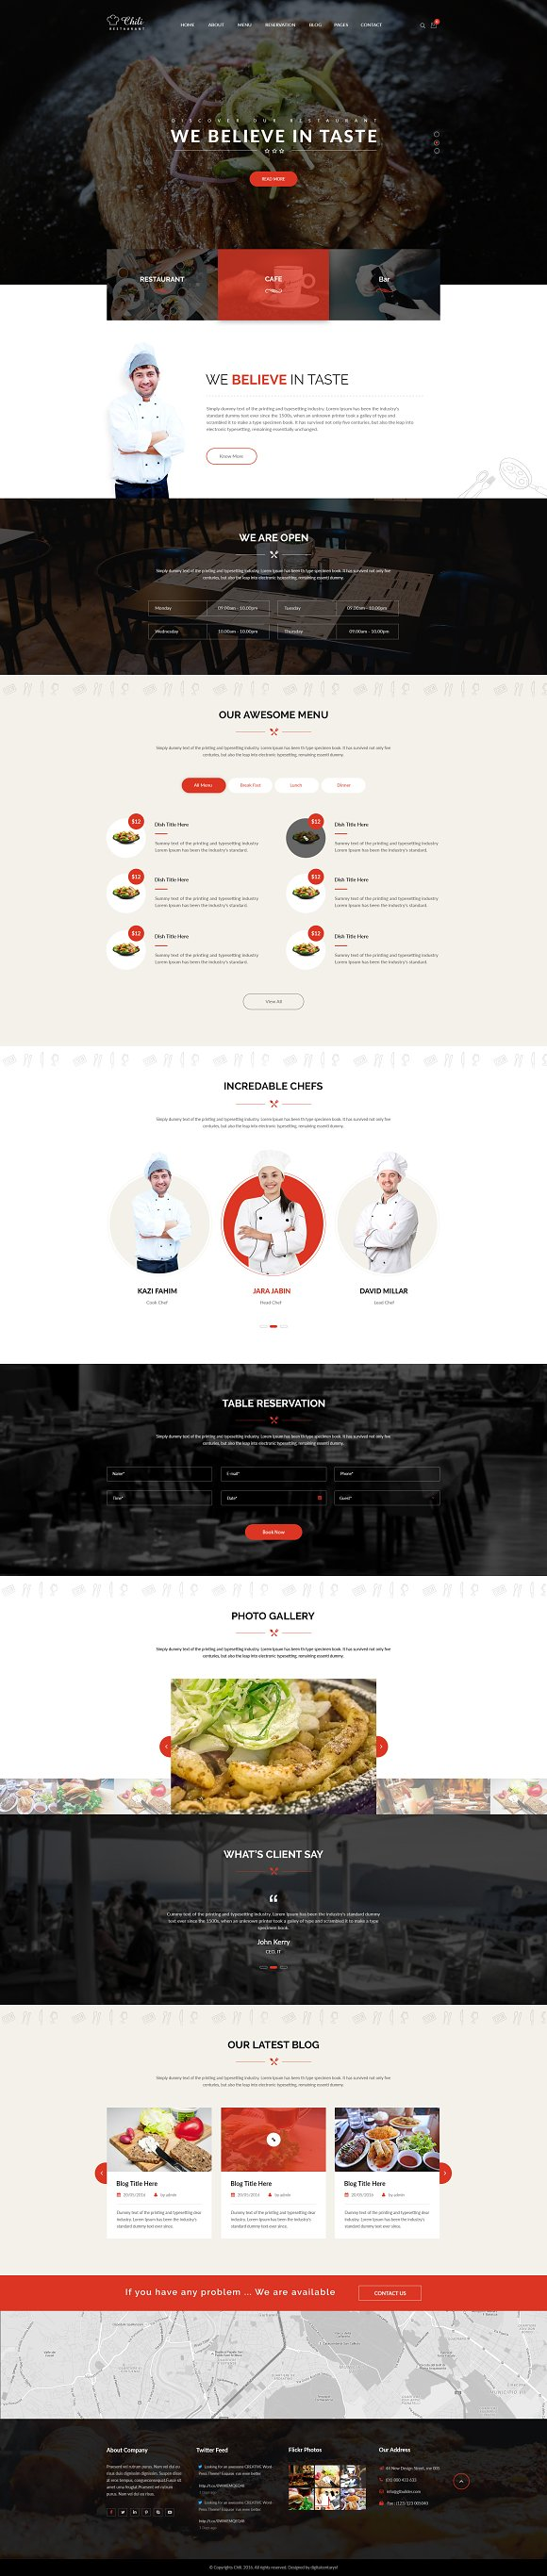 Chili Restaurant WordPress Theme